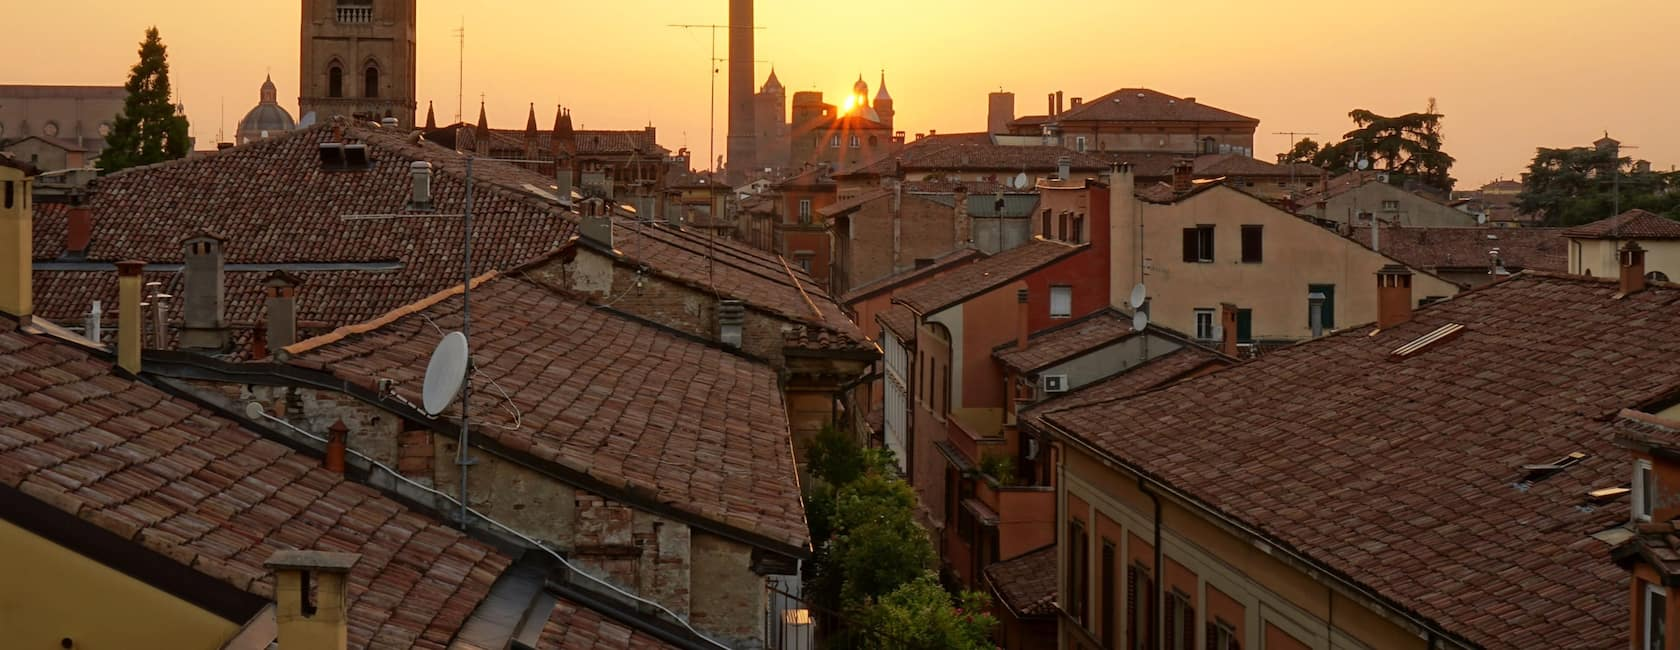 Holiday rentals in Bologna